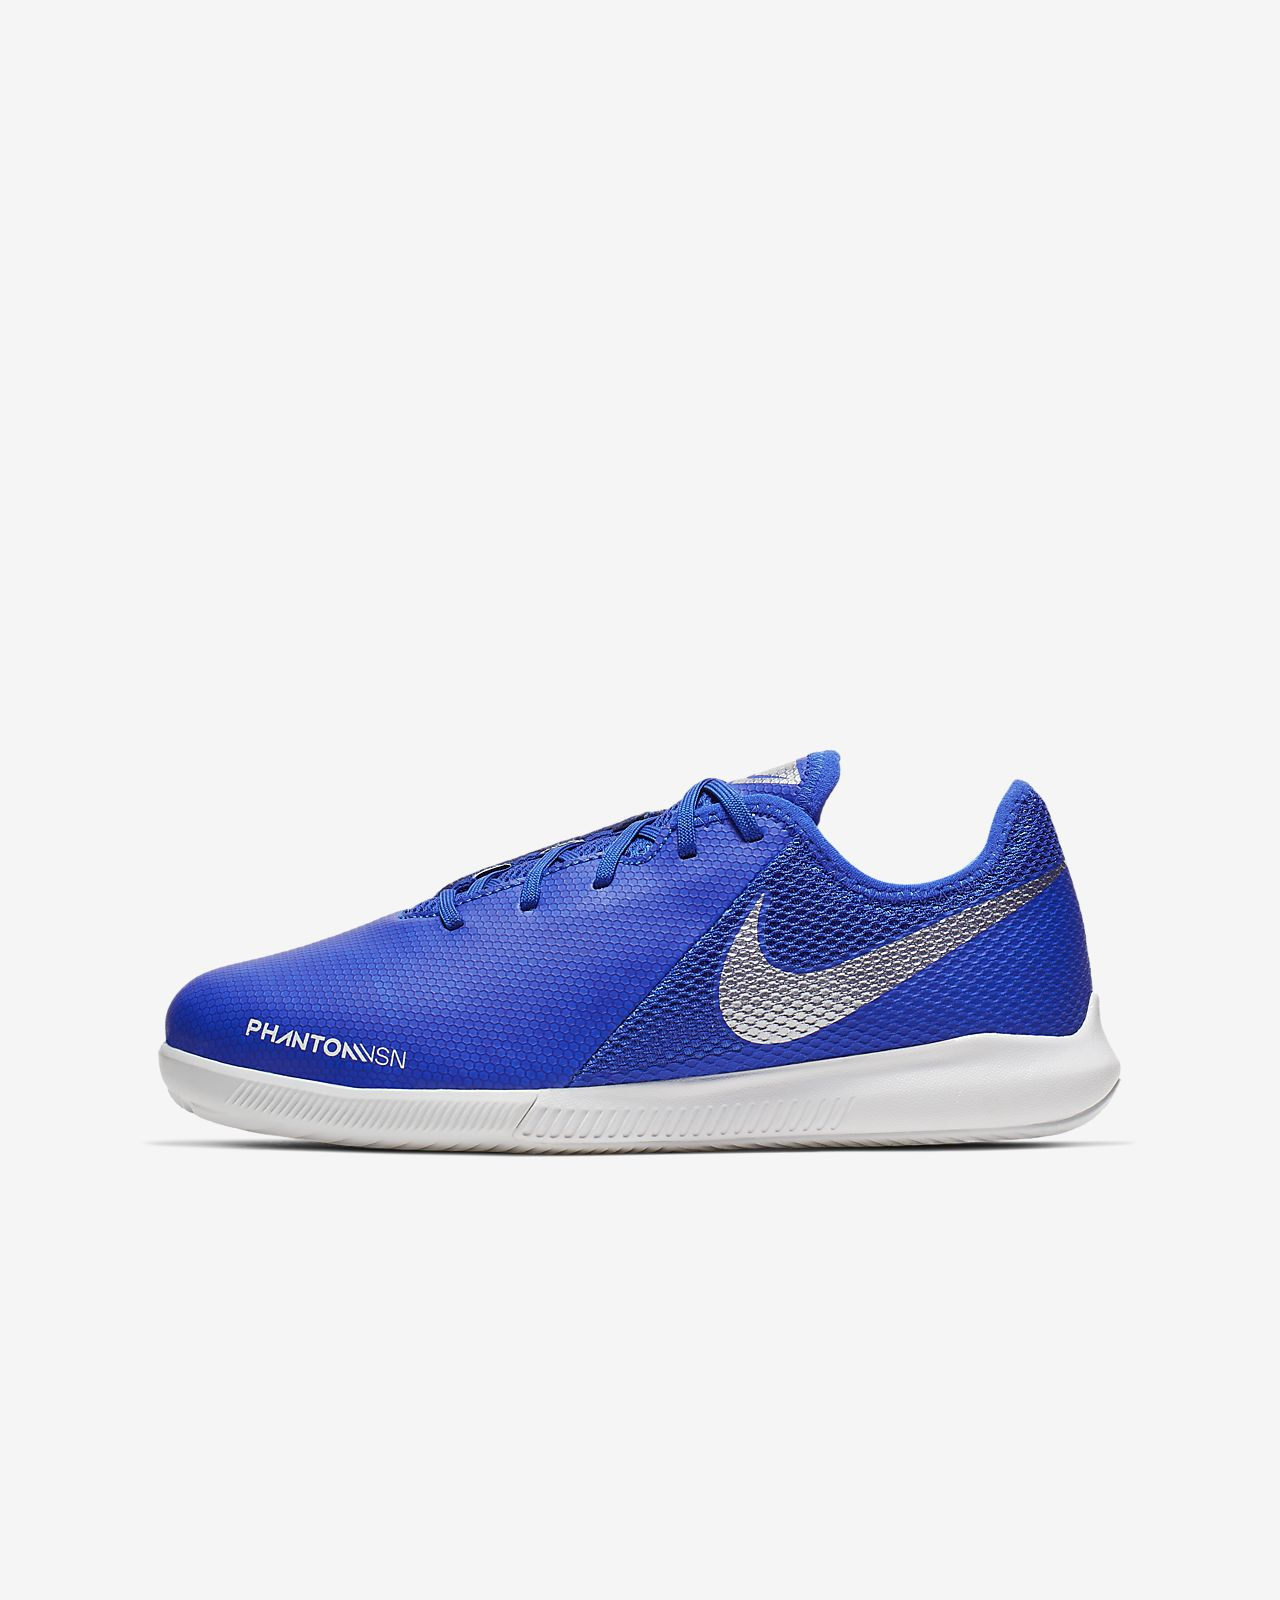 c448e8bc5edeb Younger/Older Kids' Indoor/Court Football Shoe. Nike Jr. Phantom Vision Academy  IC